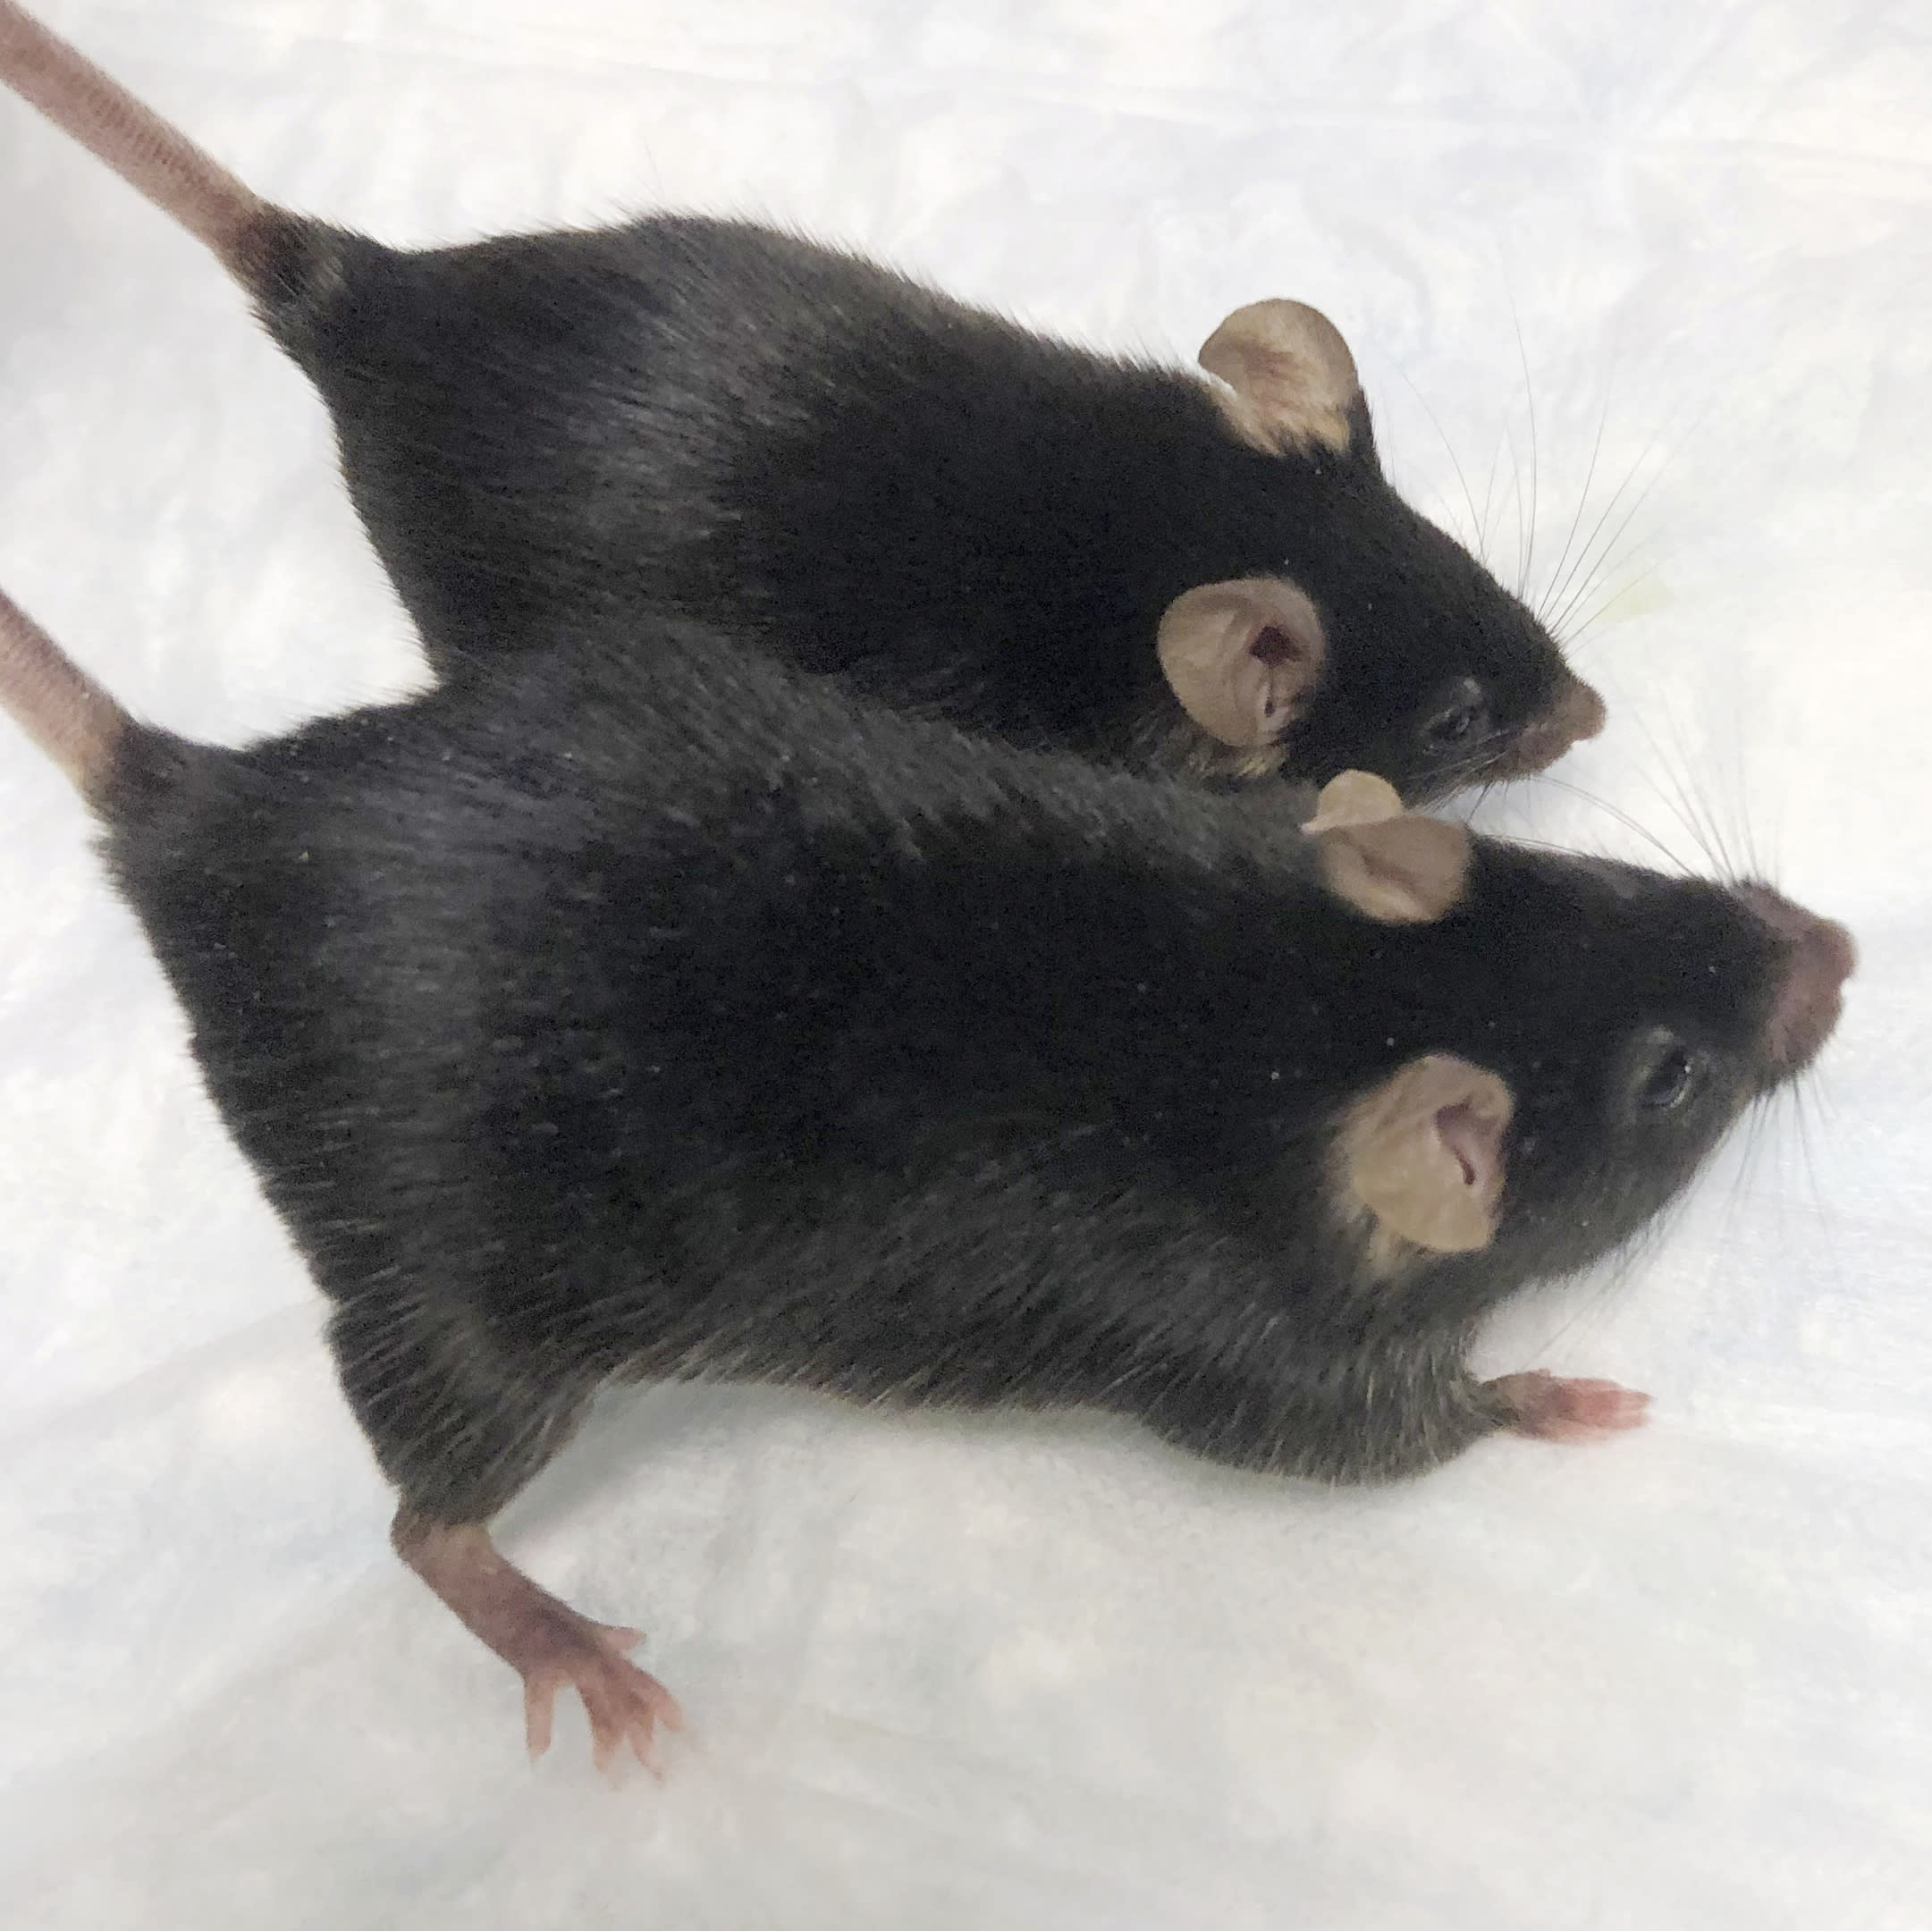 Supermice Shot Into Space Could Lead To Muscle And Bone Loss Therapies